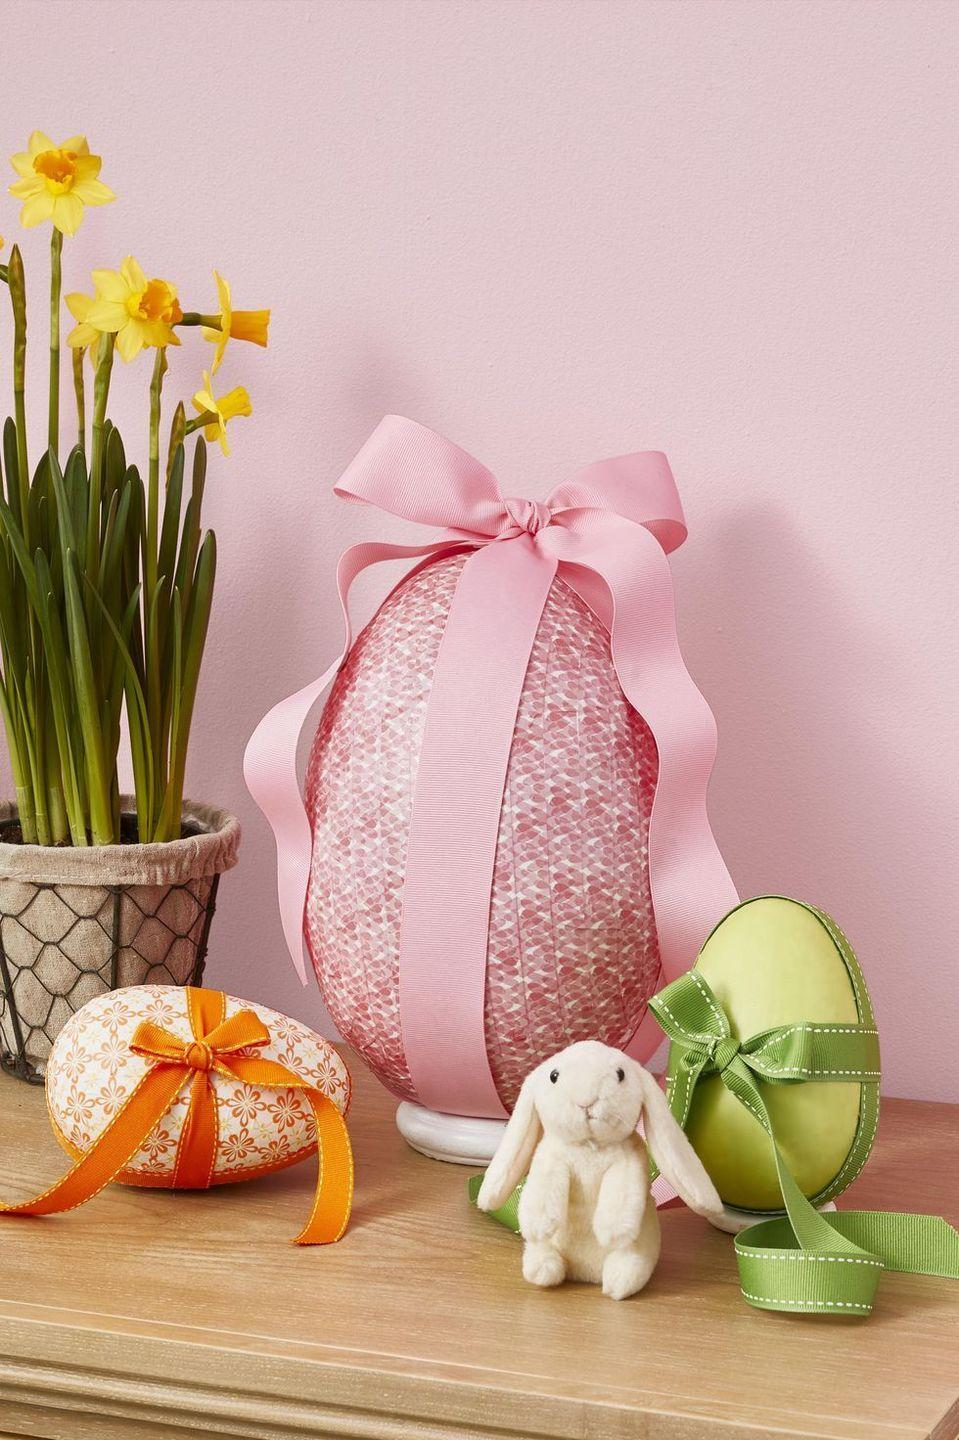 """<p>Craft this giant egg and then fill it with surprises like candy and toys to <em>really</em> impress the kids this year.</p><p><strong><em><a href=""""https://www.womansday.com/home/crafts-projects/g2216/easter-eggs/?slide=2"""" rel=""""nofollow noopener"""" target=""""_blank"""" data-ylk=""""slk:Get the Surprise Egg tutorial."""" class=""""link rapid-noclick-resp"""">Get the Surprise Egg tutorial.</a></em></strong></p><p><strong><a class=""""link rapid-noclick-resp"""" href=""""https://www.amazon.com/VILAVITA-Cupcake-Dessert-Birthday-Celebration/dp/B074TF6YB4?tag=syn-yahoo-20&ascsubtag=%5Bartid%7C10070.g.1751%5Bsrc%7Cyahoo-us"""" rel=""""nofollow noopener"""" target=""""_blank"""" data-ylk=""""slk:SHOP CAKE STANDS"""">SHOP CAKE STANDS</a></strong></p>"""